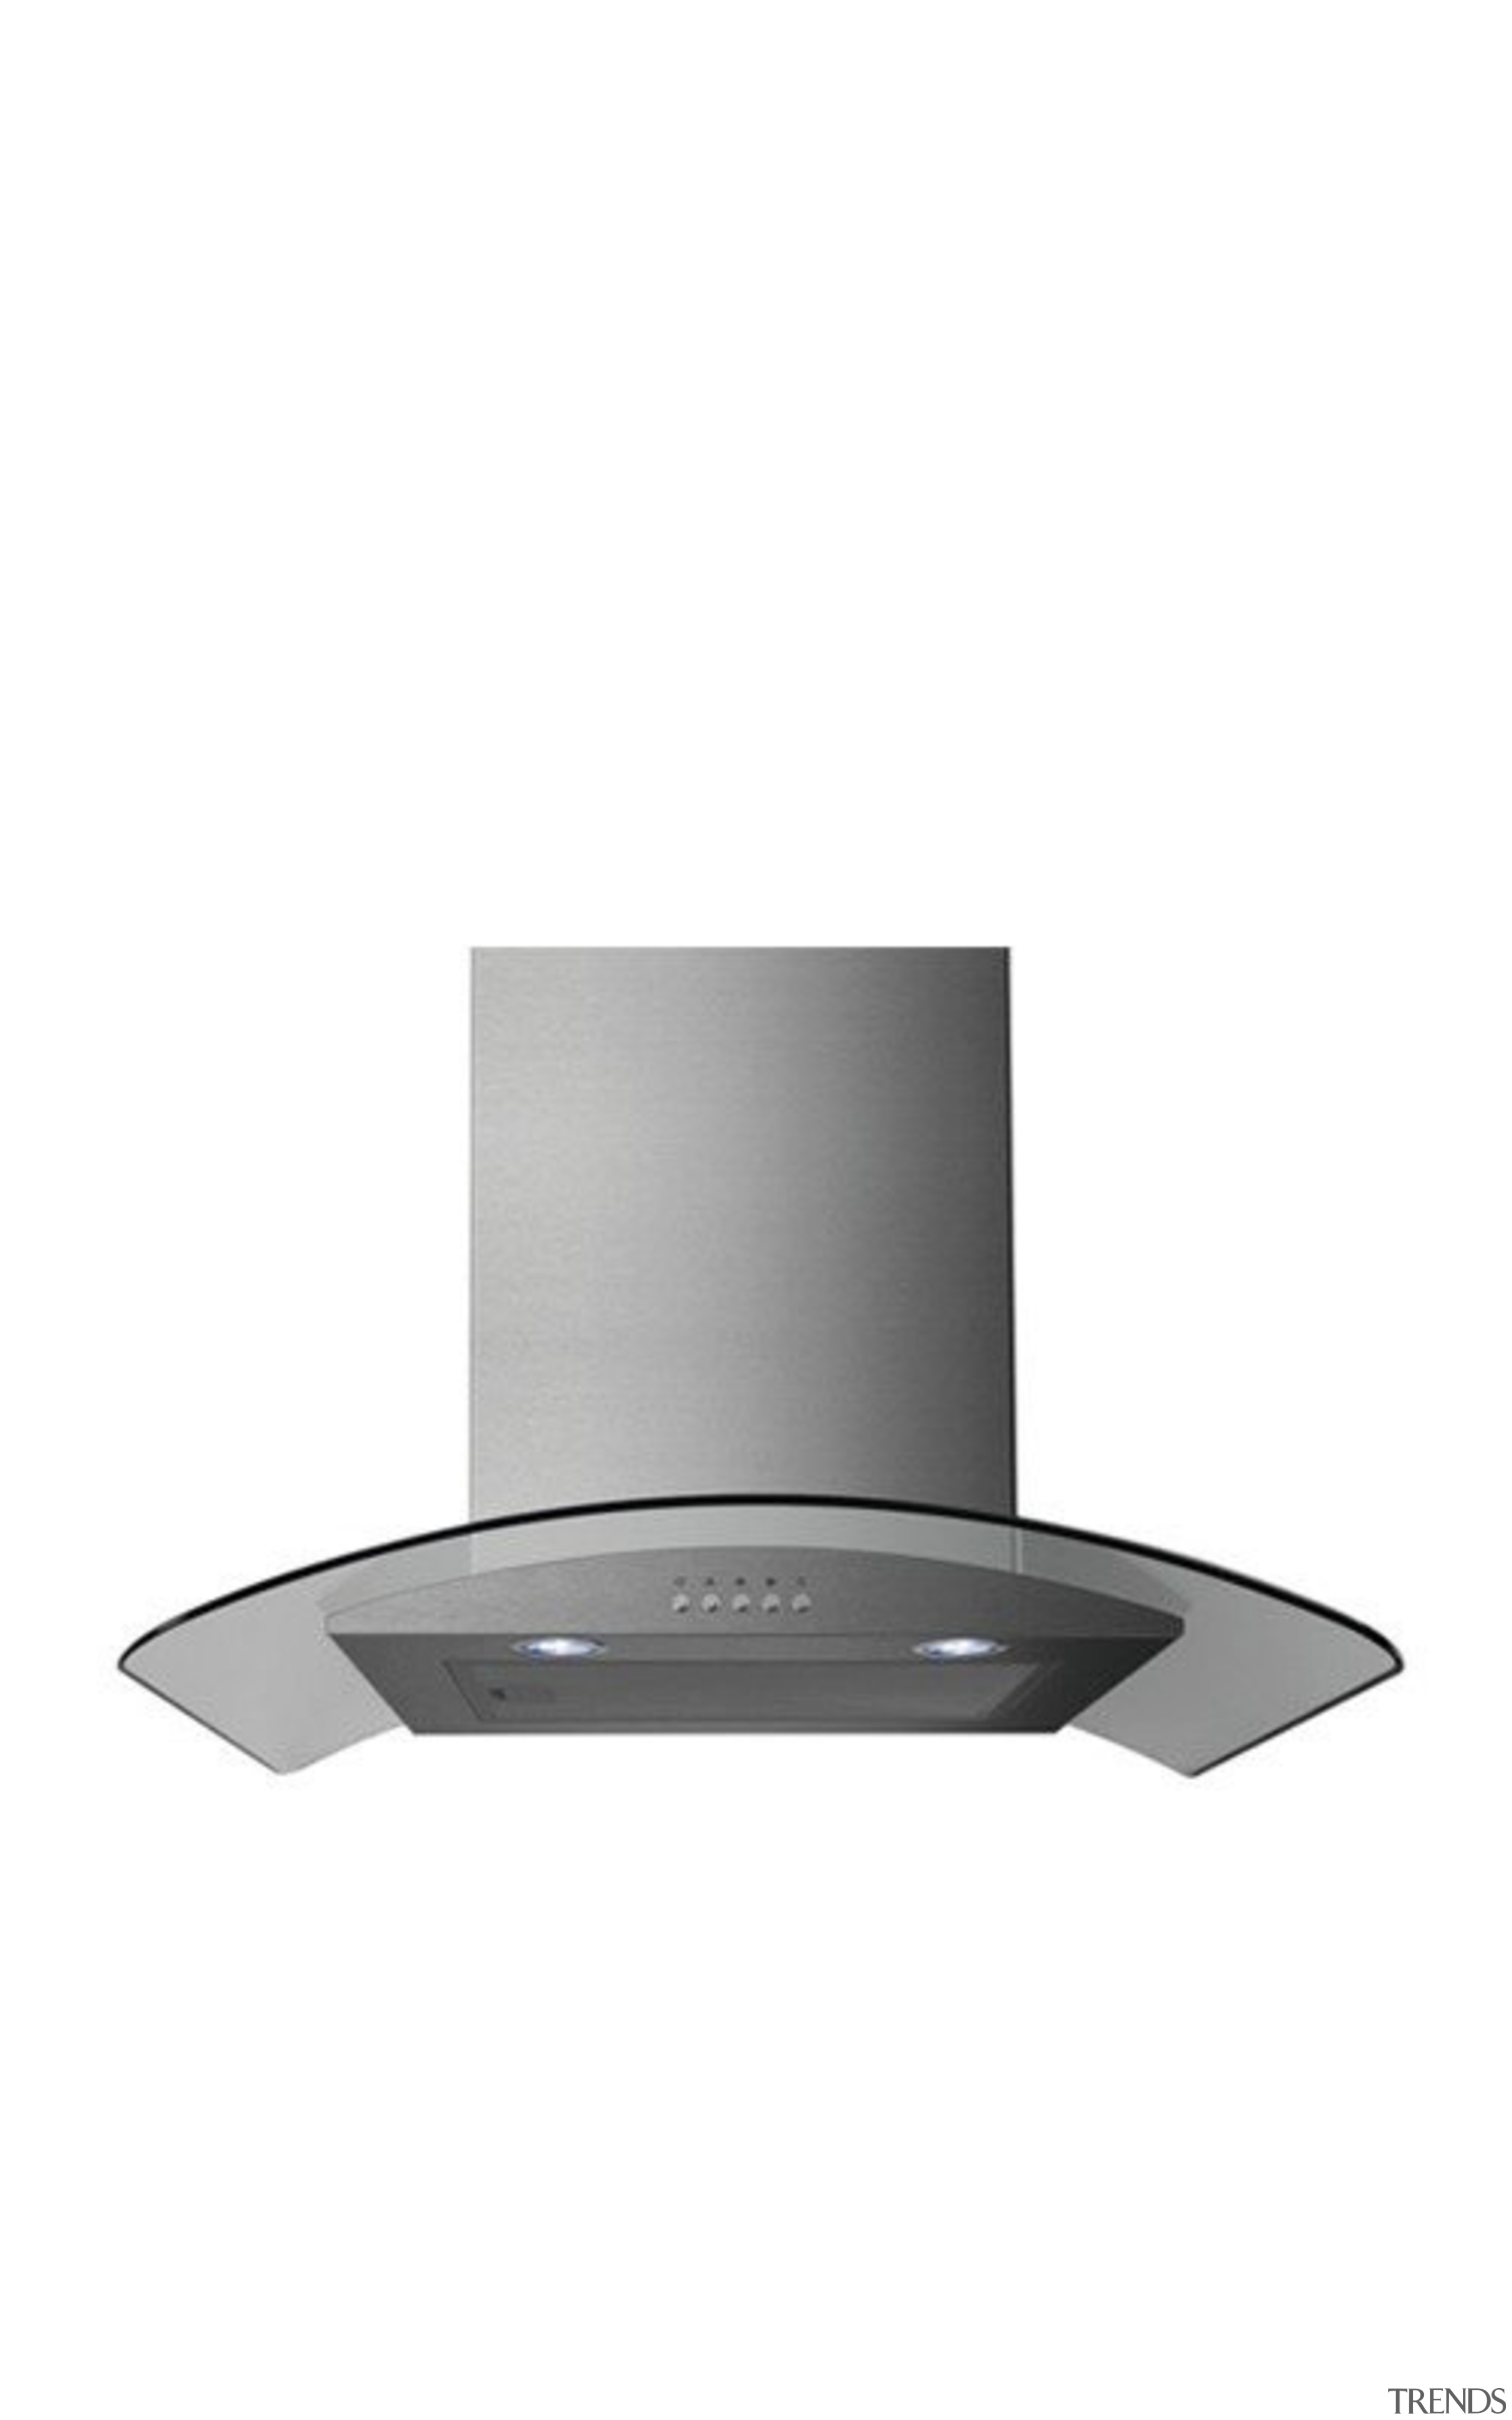 60cm Curved Glass RangehoodGlass + stainless steel, Push angle, kitchen appliance, product, white